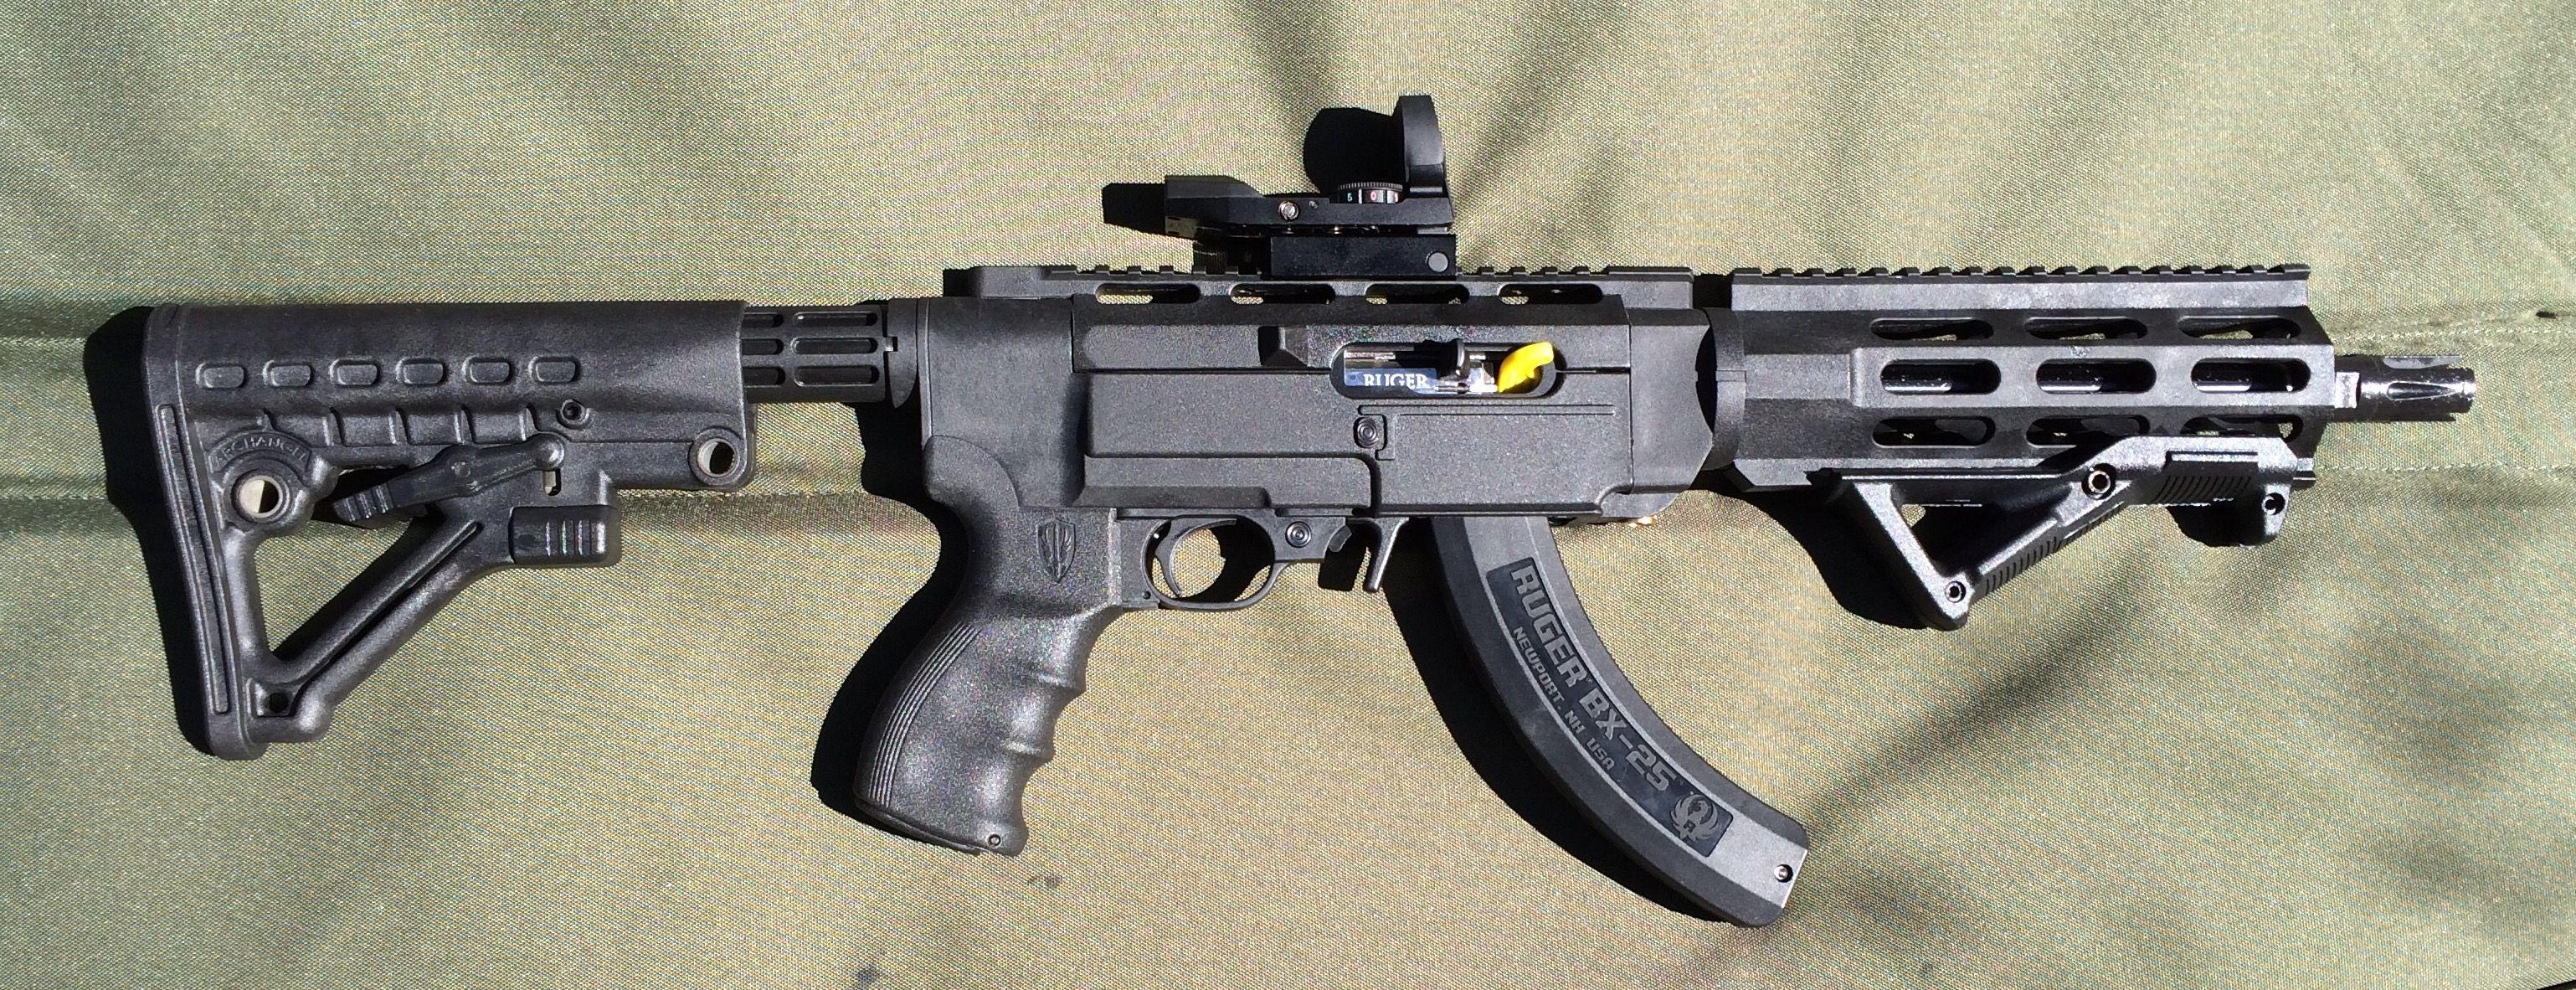 Ruger Charger In An Archangel Chassis With A Pws Triad Flash